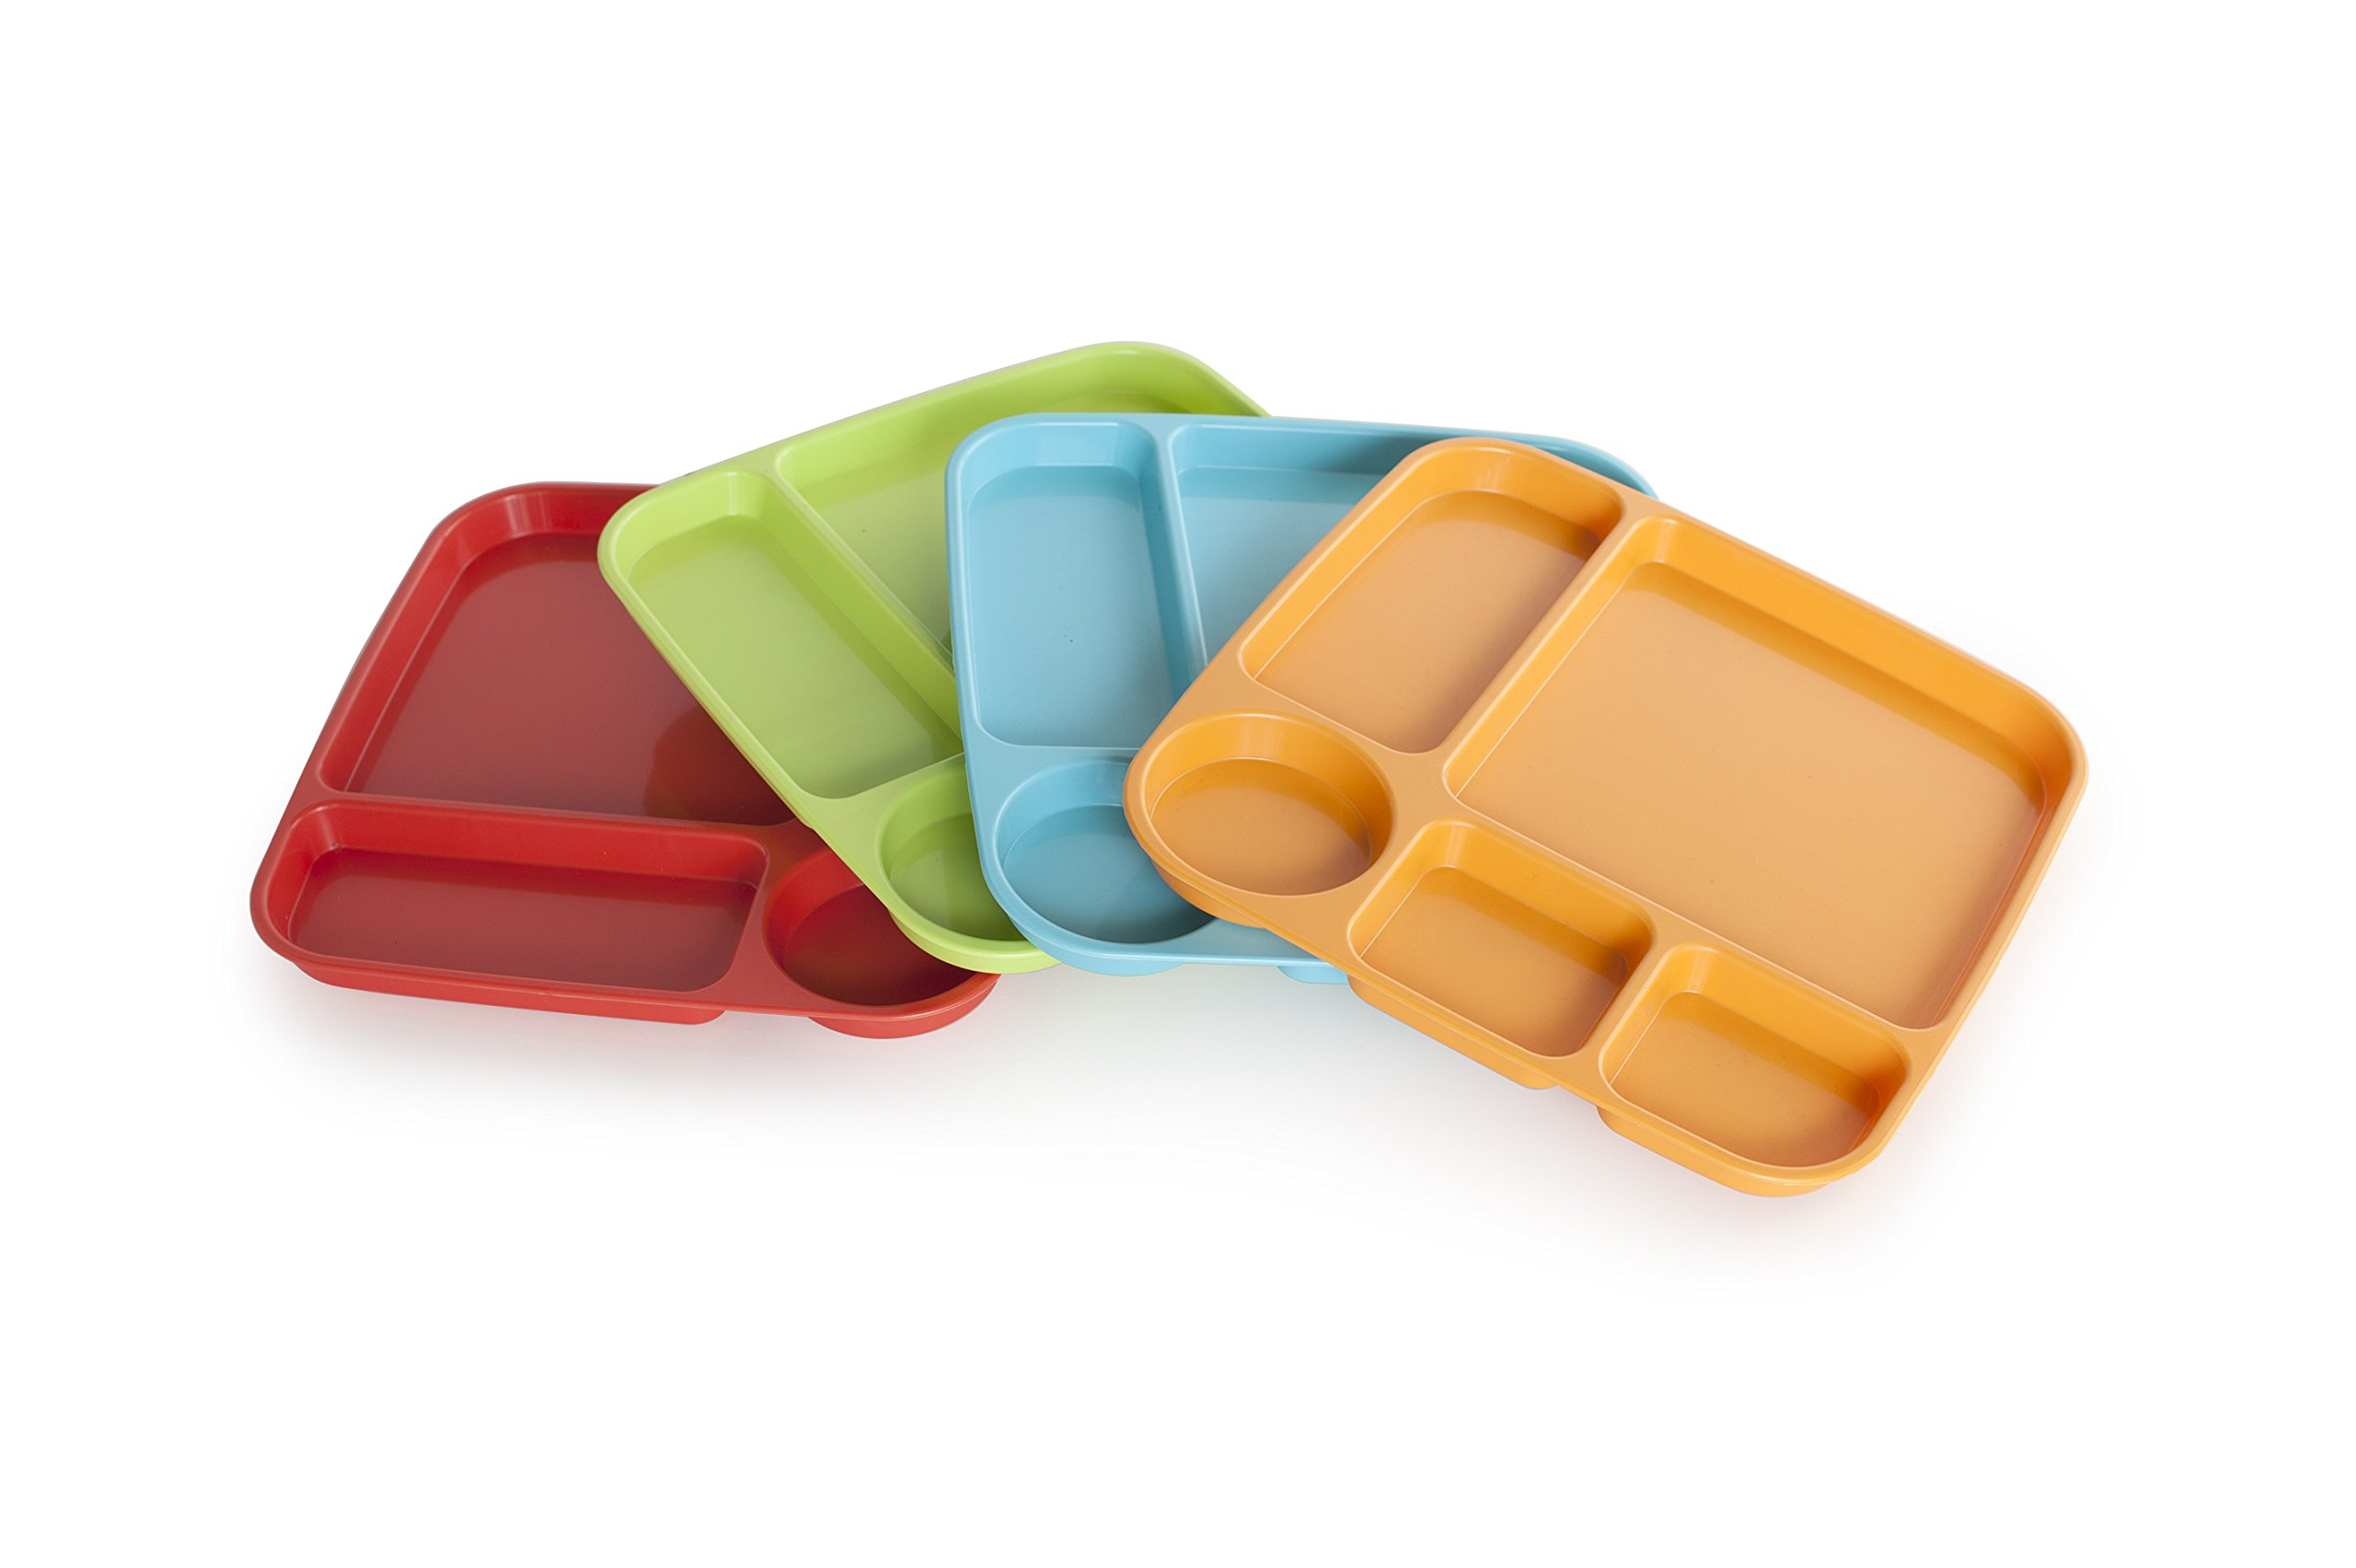 Nordic Ware Party Trays, Assorted Colors, Set of 4